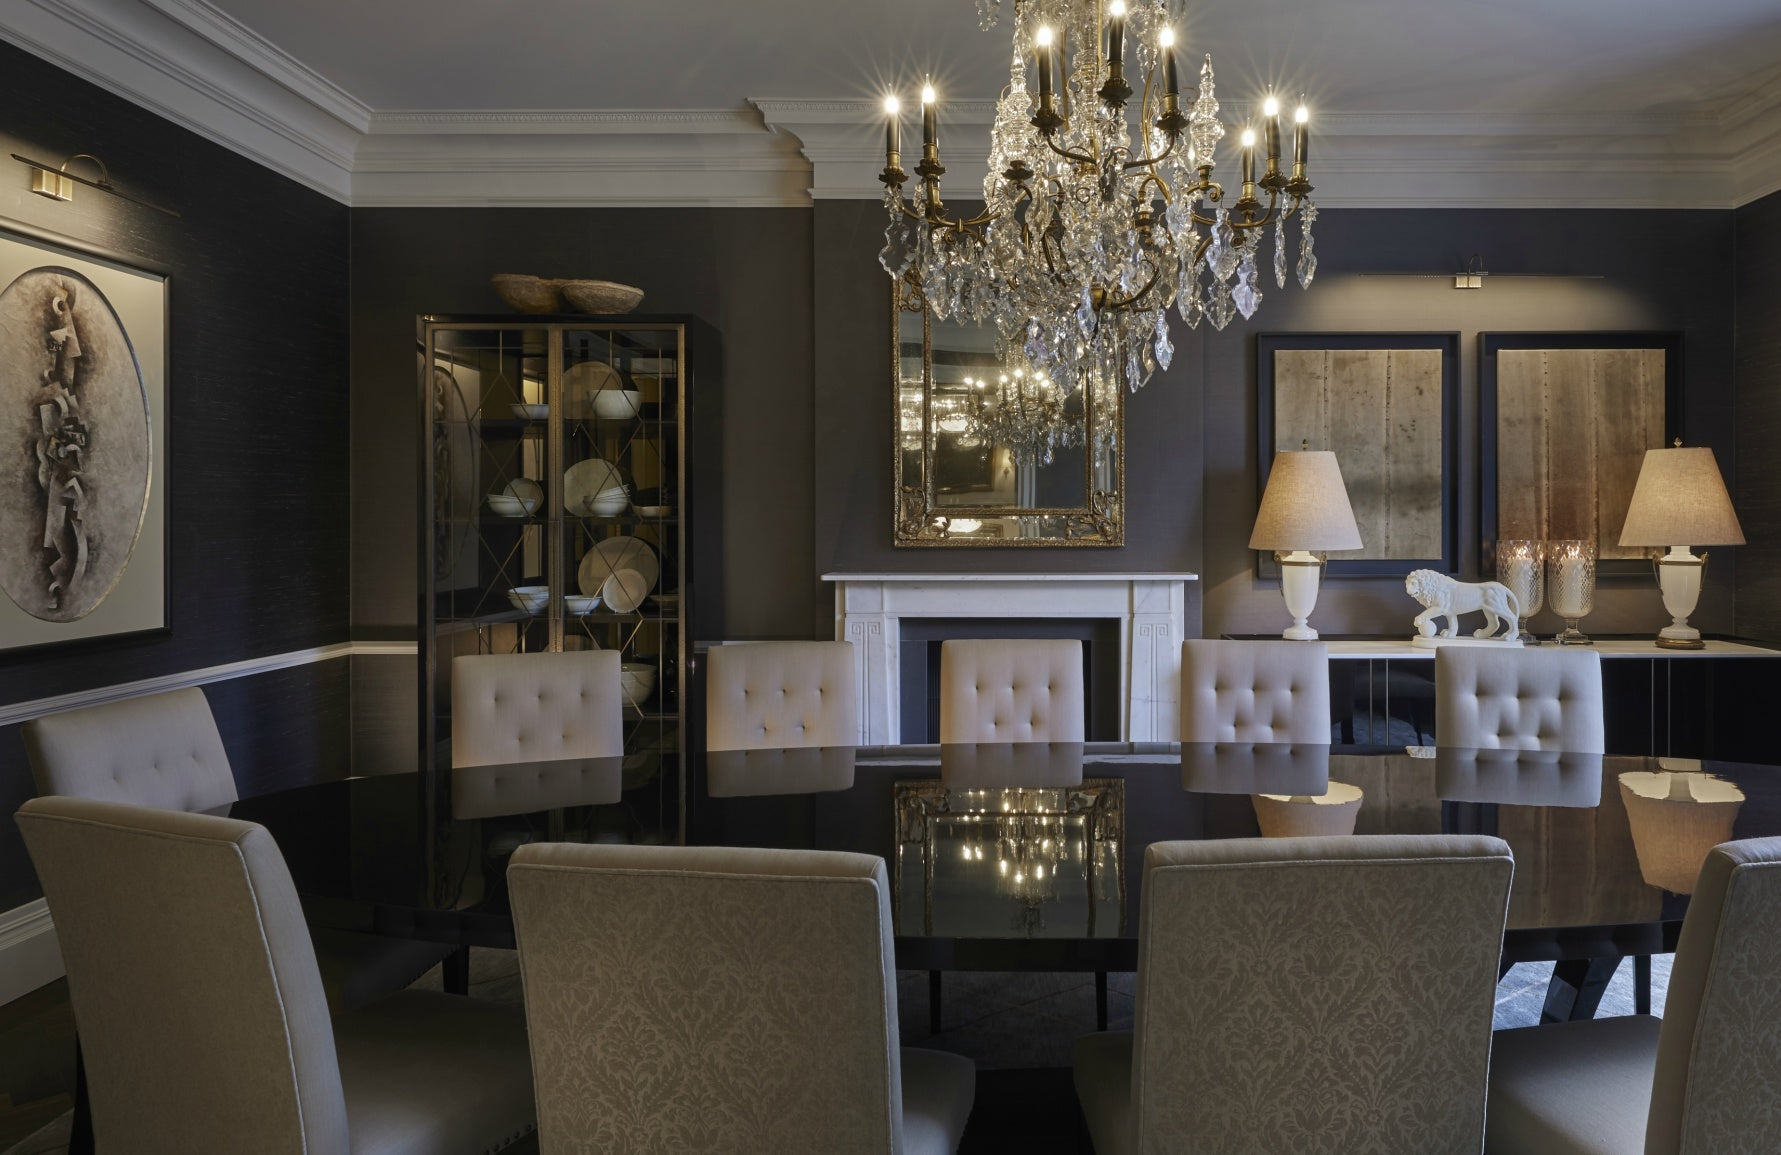 Luxury Dining Room Styles | Traditional Dining Room | Louise Bradley | Read more in The Luxurist at LuxDeco.com